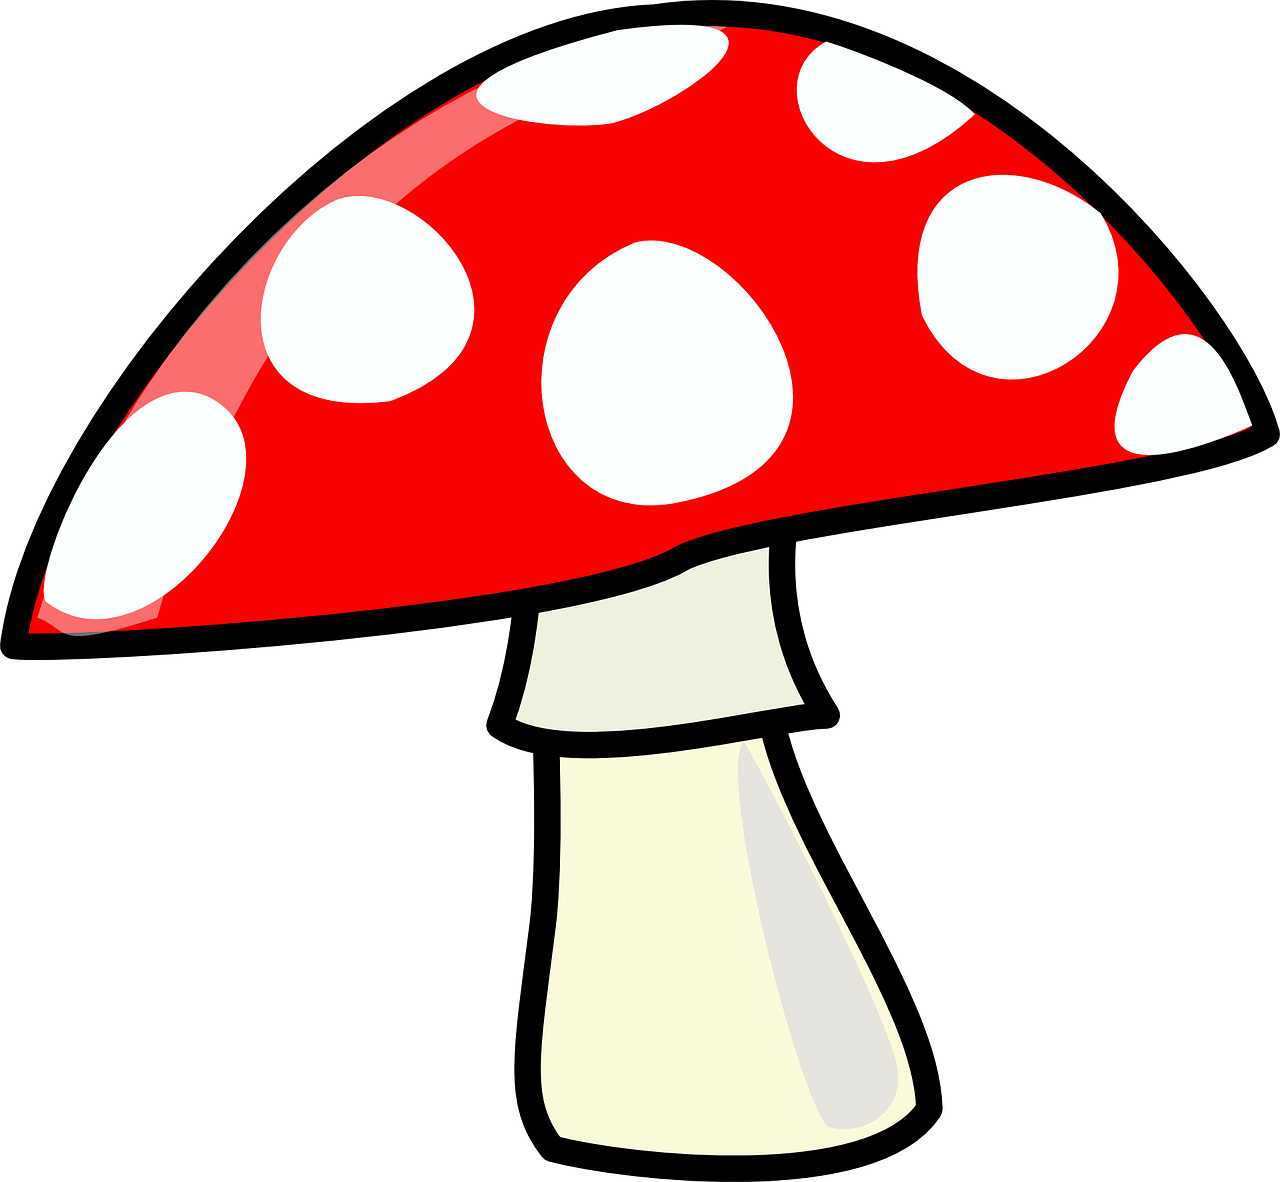 mushroom red cartoons free photo